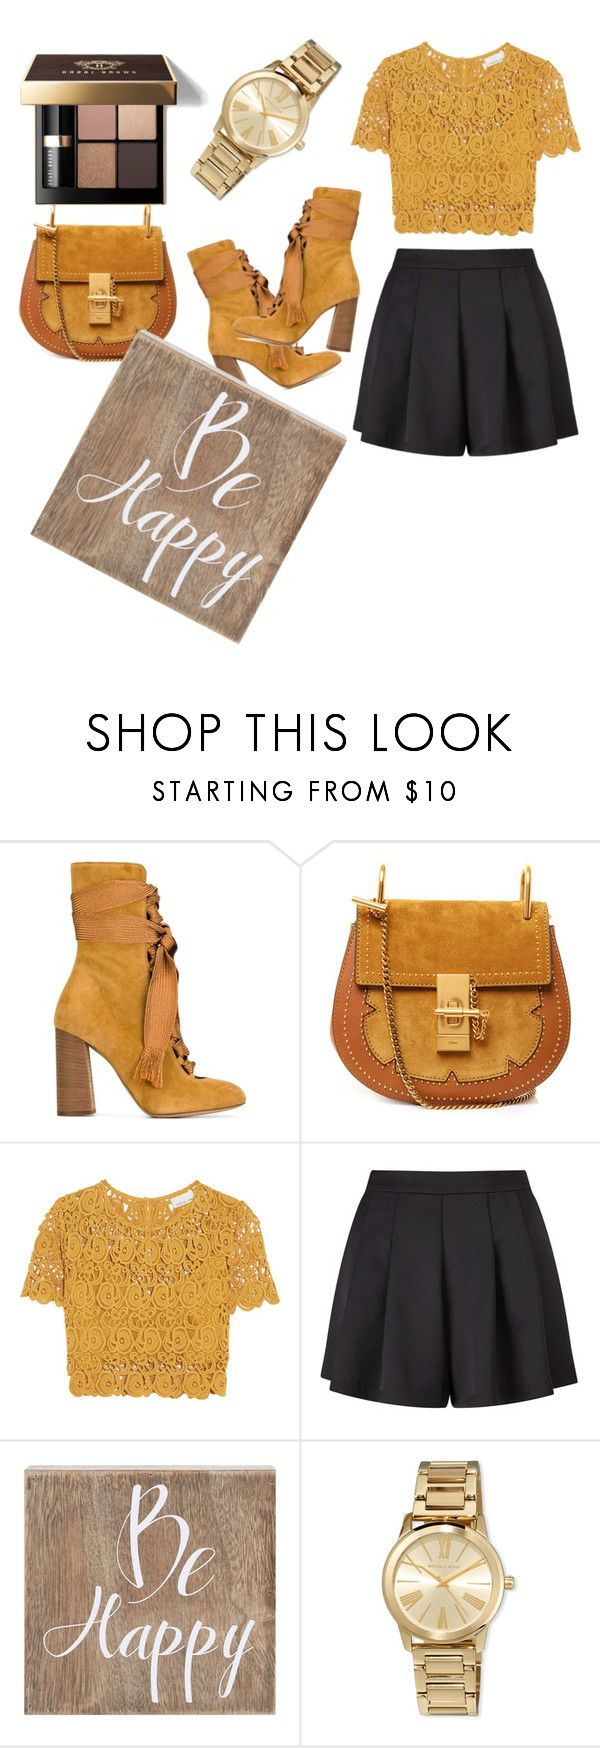 """""""Untitled #58"""" by amela83 ❤ liked on Polyvore featuring Chloé, Miguelina, Miss Selfridge, Belle Maison, MICHAEL Michael Kors and Bobbi Brown Cosmetics"""